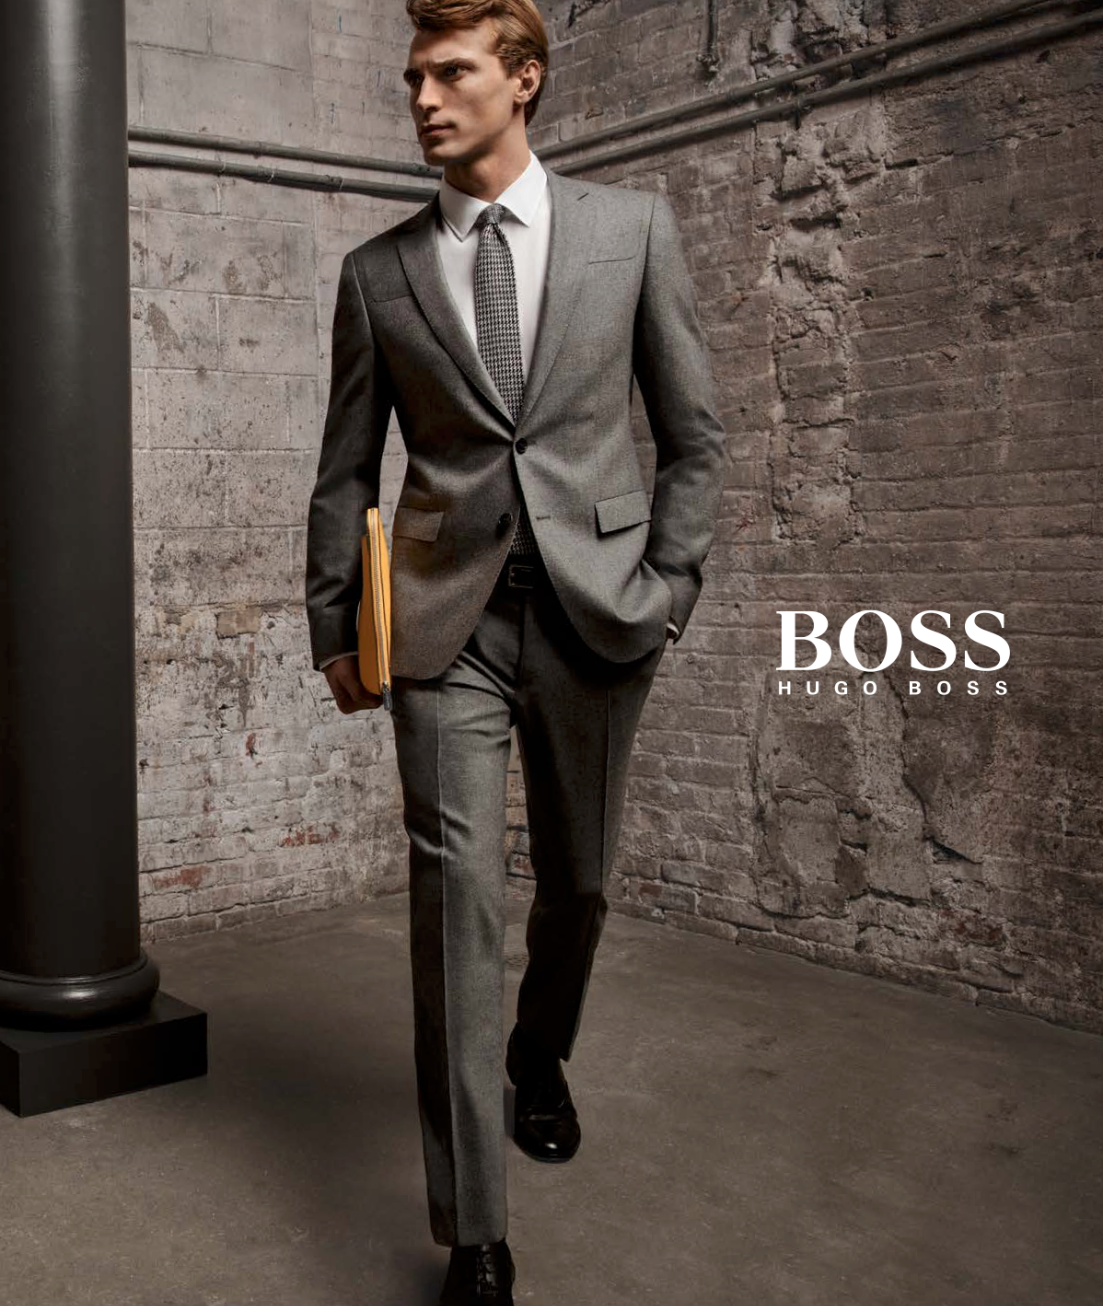 Hugo Boss à Bayonne Gentleman